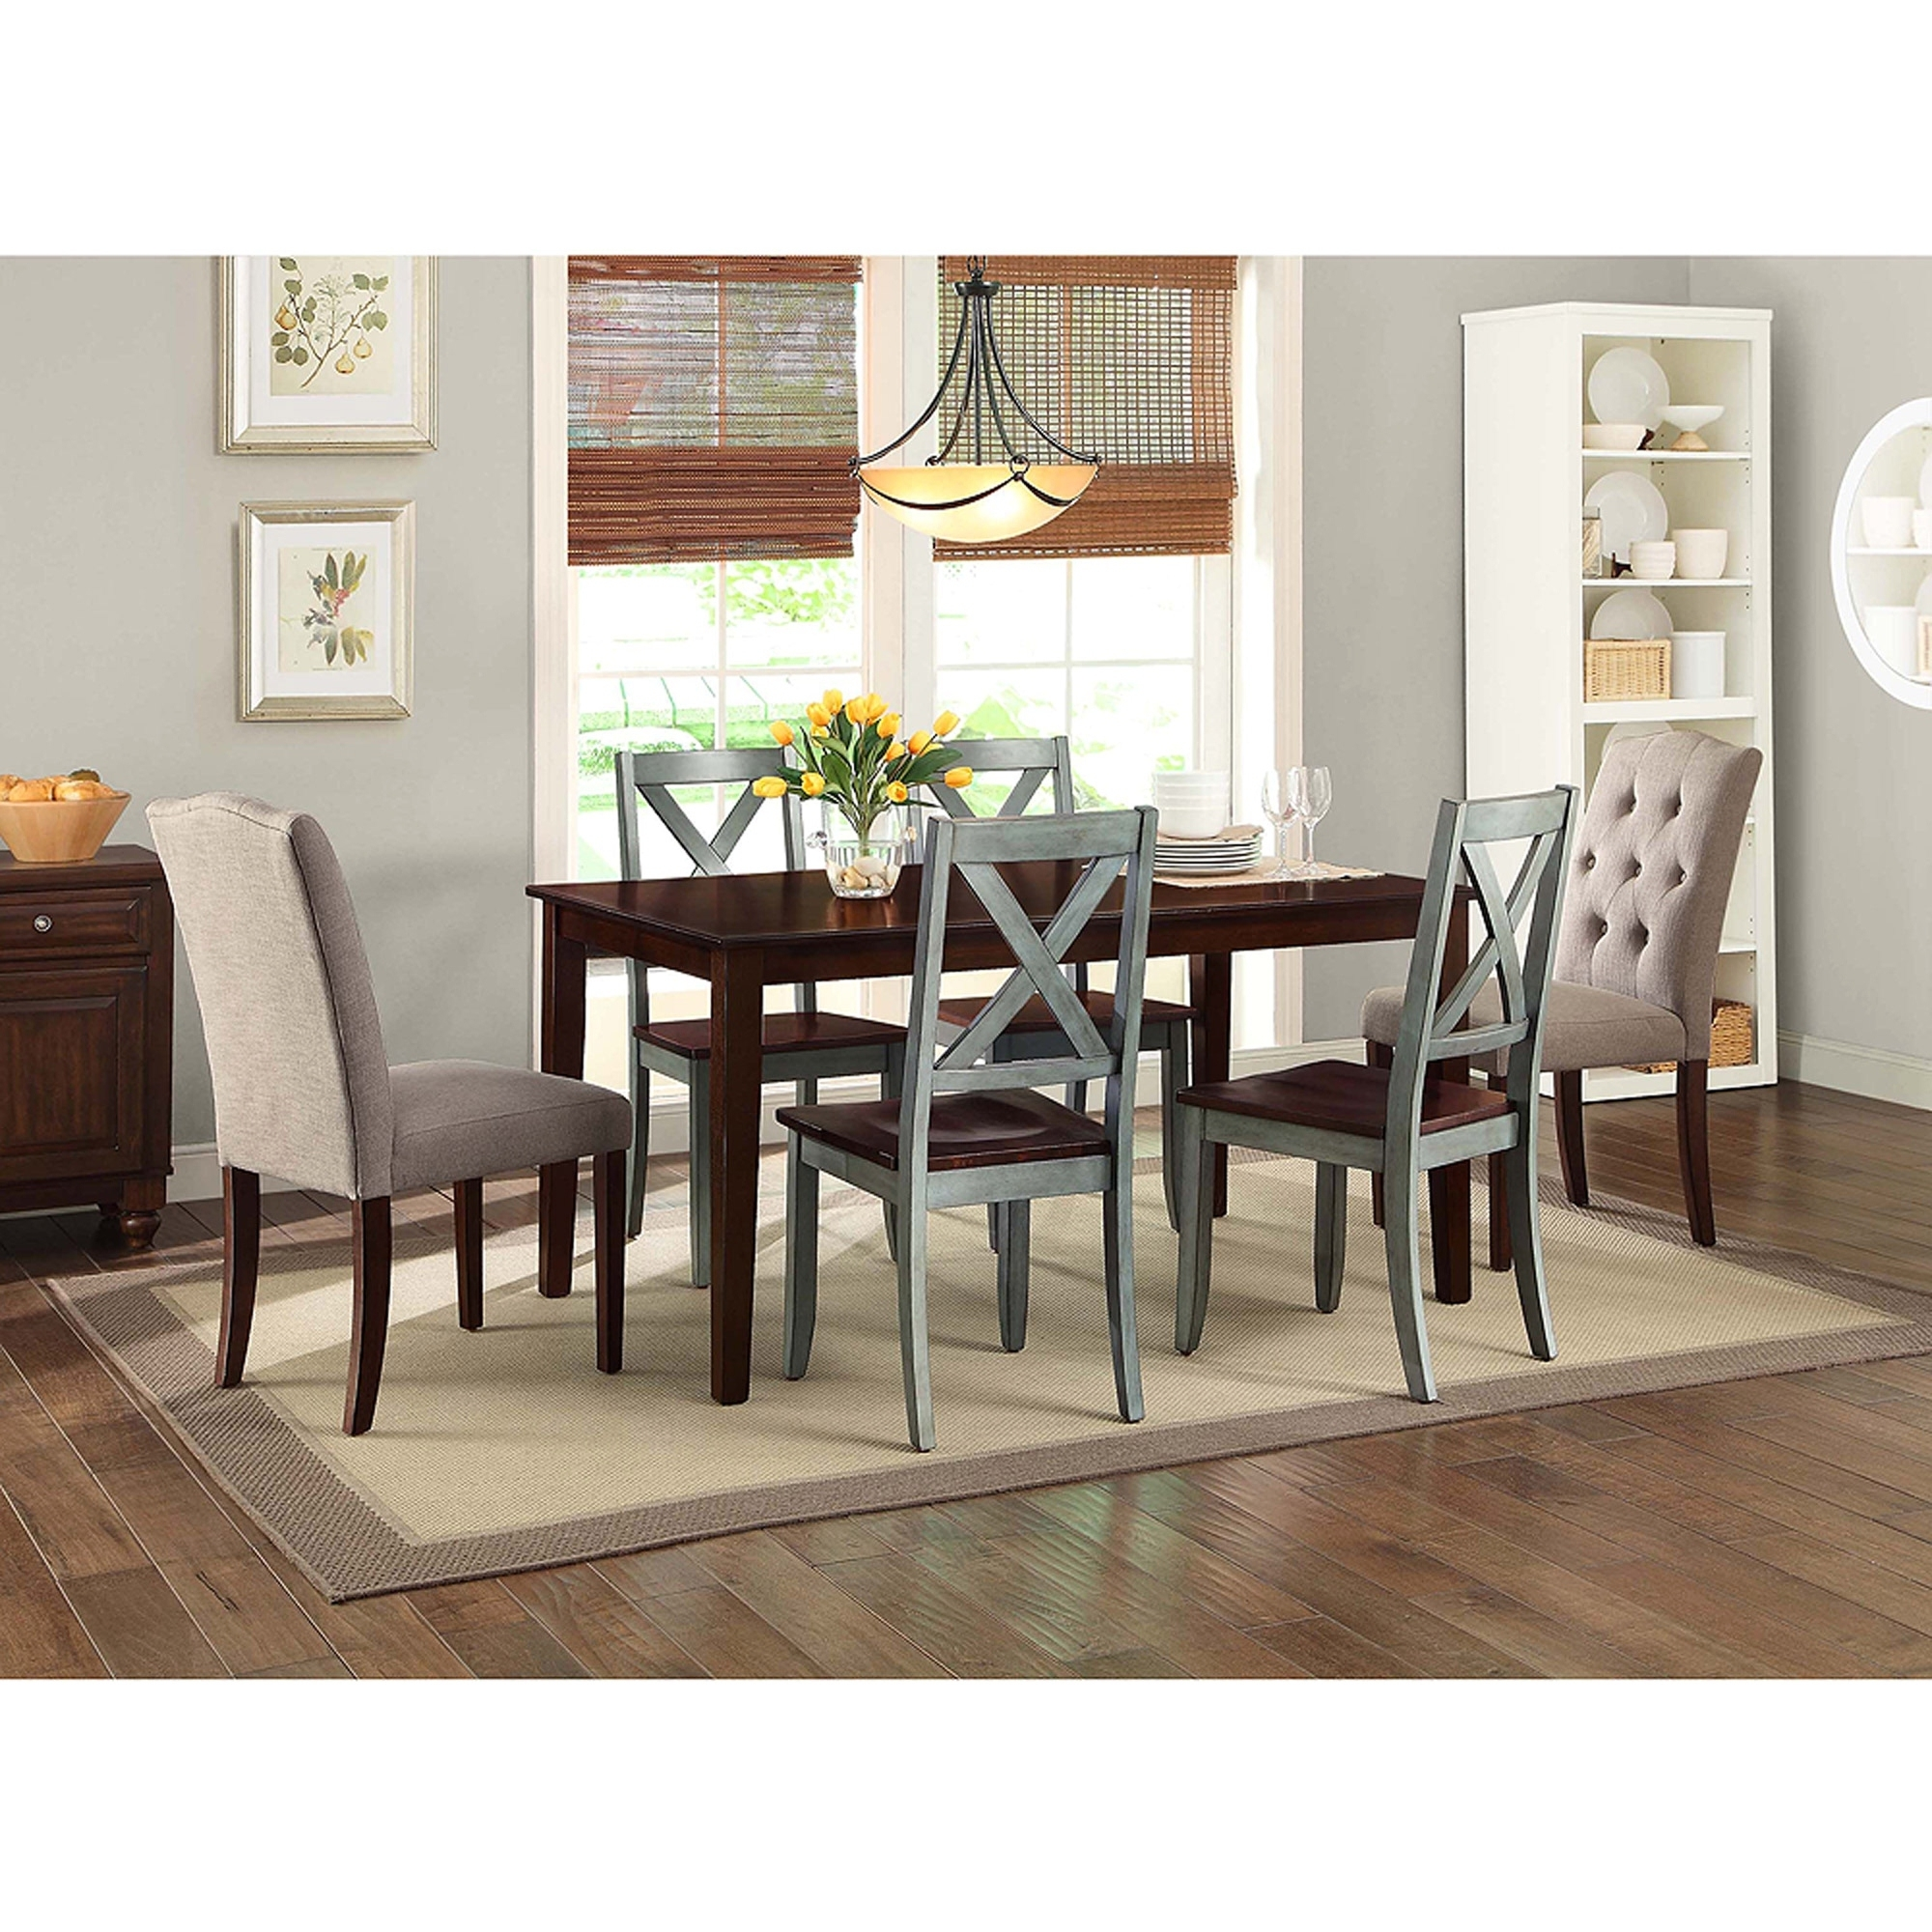 Bank Of Ideas In Partridge 7 Piece Dining Sets (View 18 of 25)